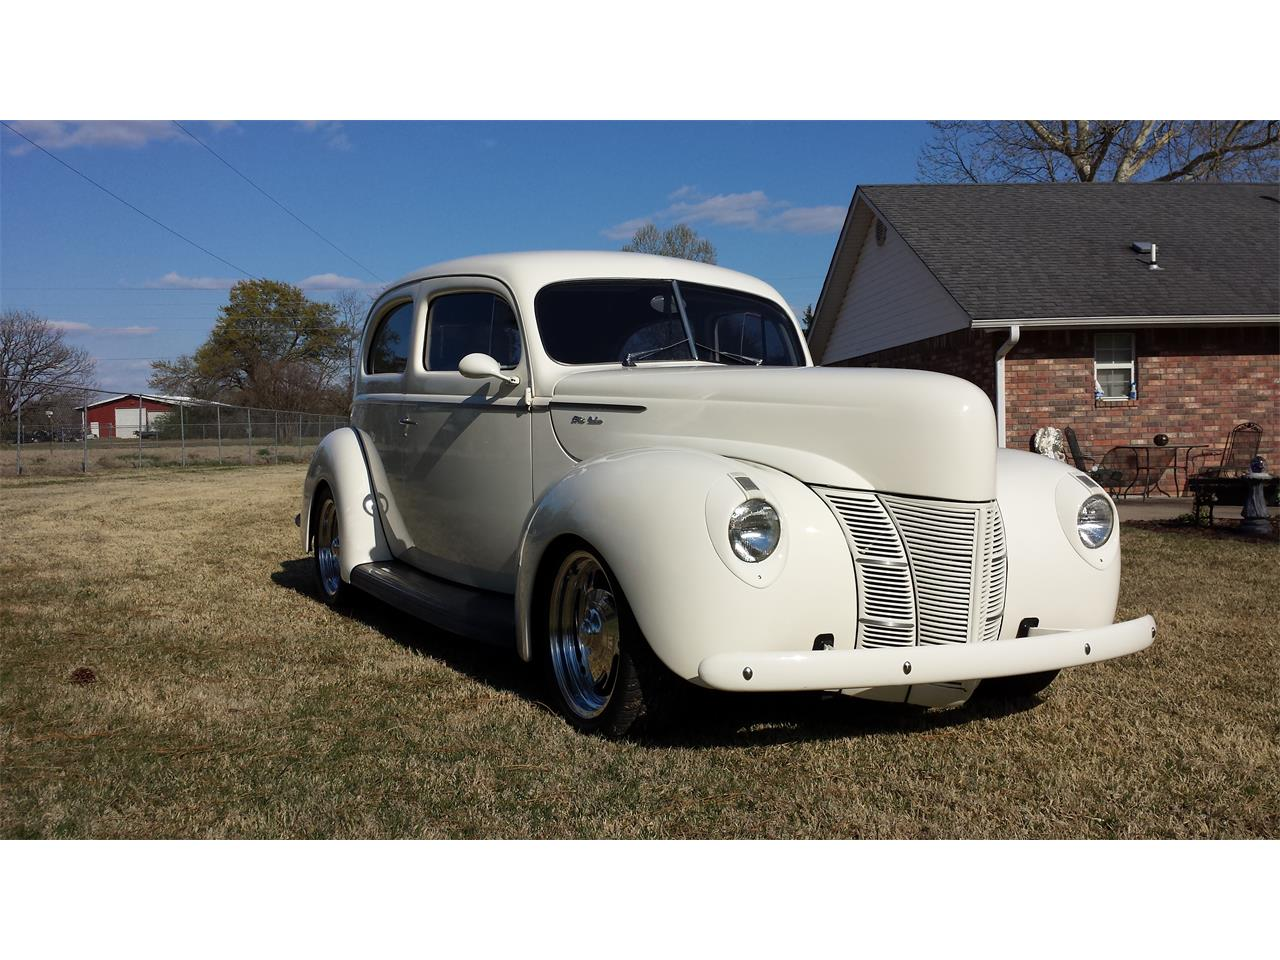 Large Picture of '40 Ford Deluxe located in Okmulgee Oklahoma - $29,500.00 Offered by a Private Seller - HO65